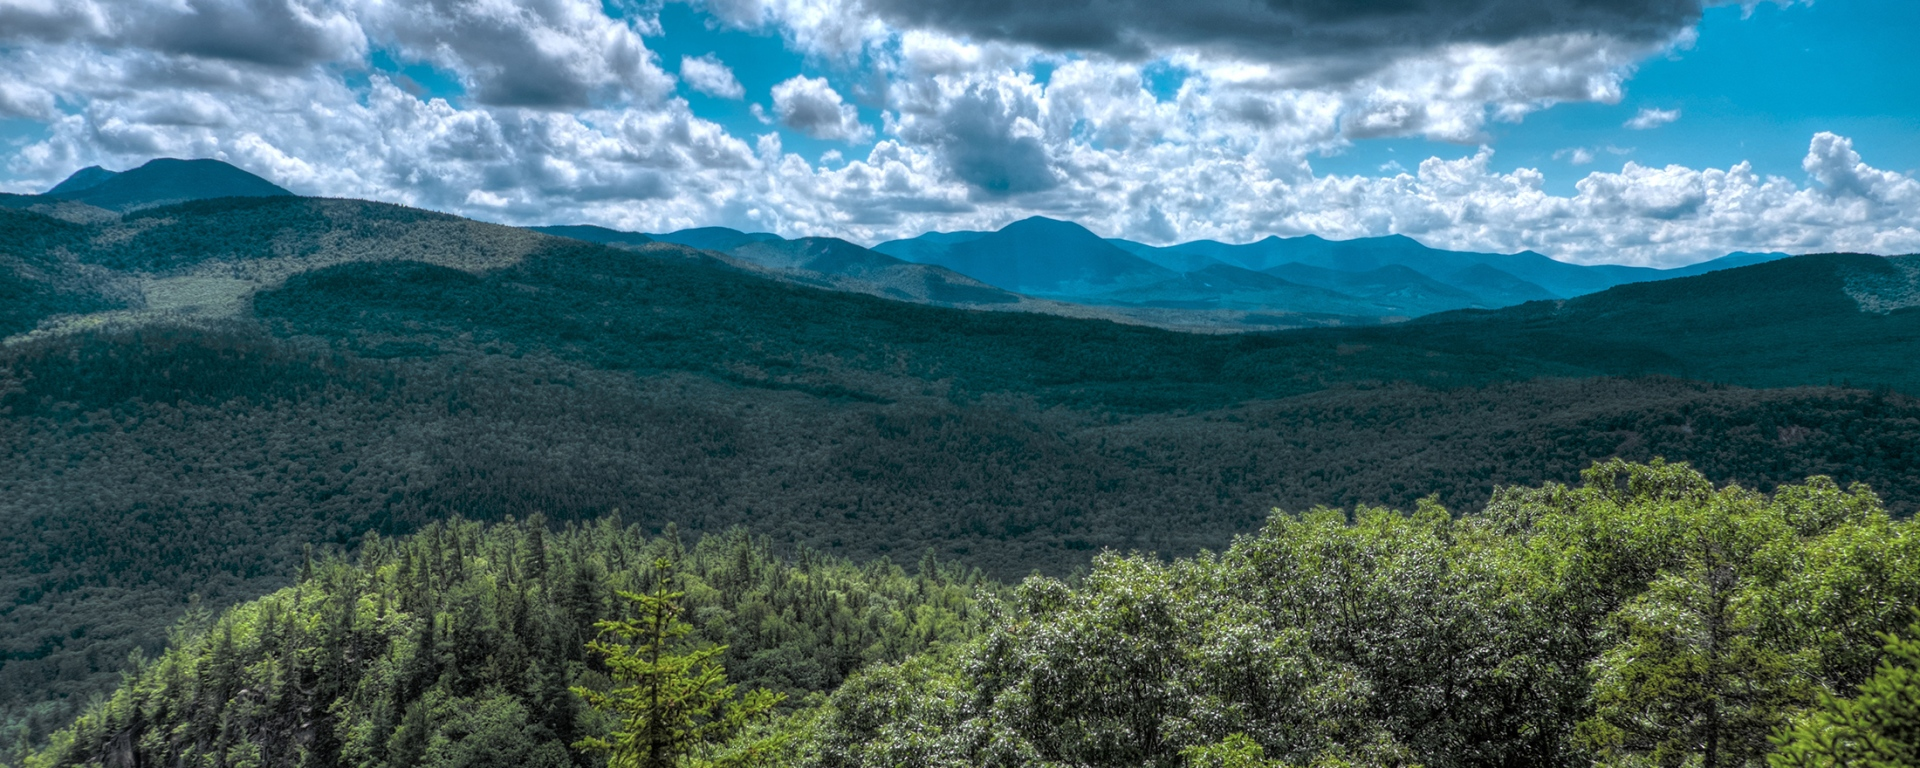 A looming rain cloud sits above the boulder loop trail in the White Mountains of New Hampshire